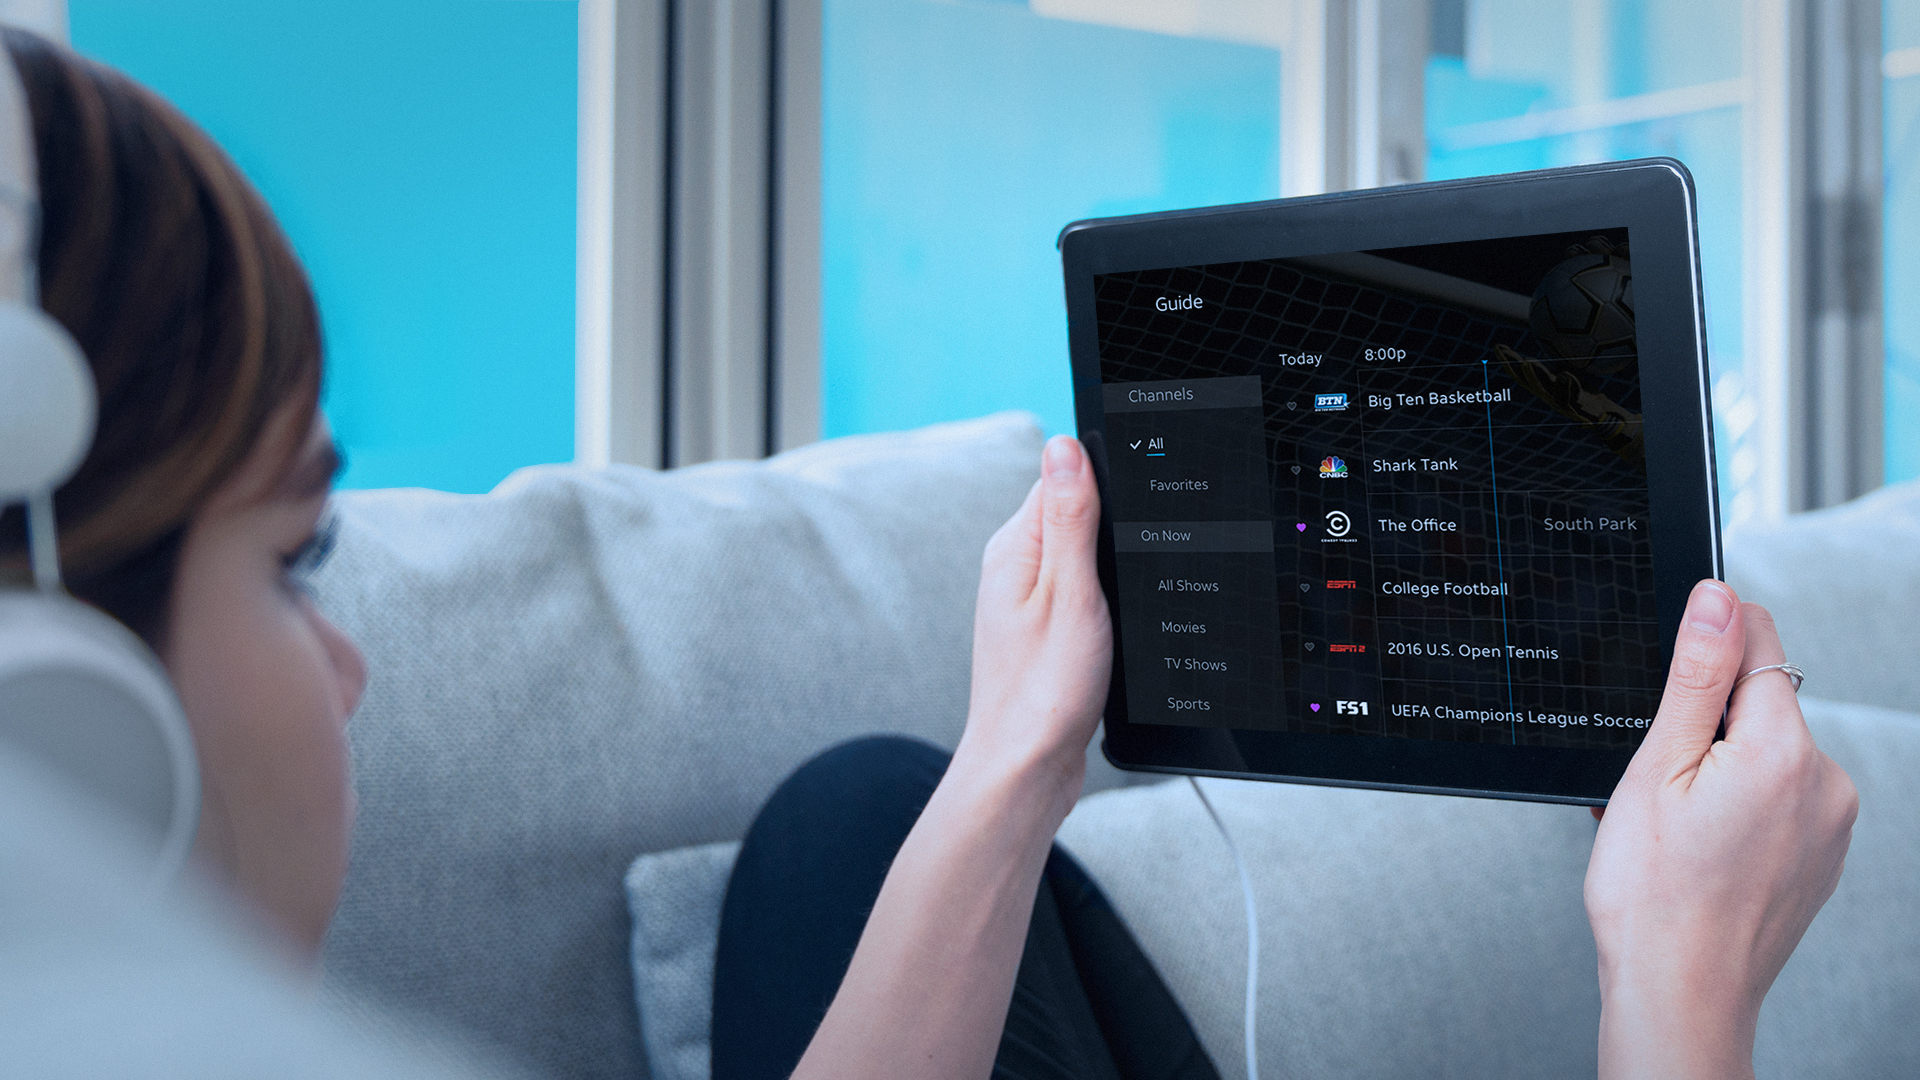 hight resolution of at t s directv now live tv service launches a dvr upgrades the app with new features techcrunch